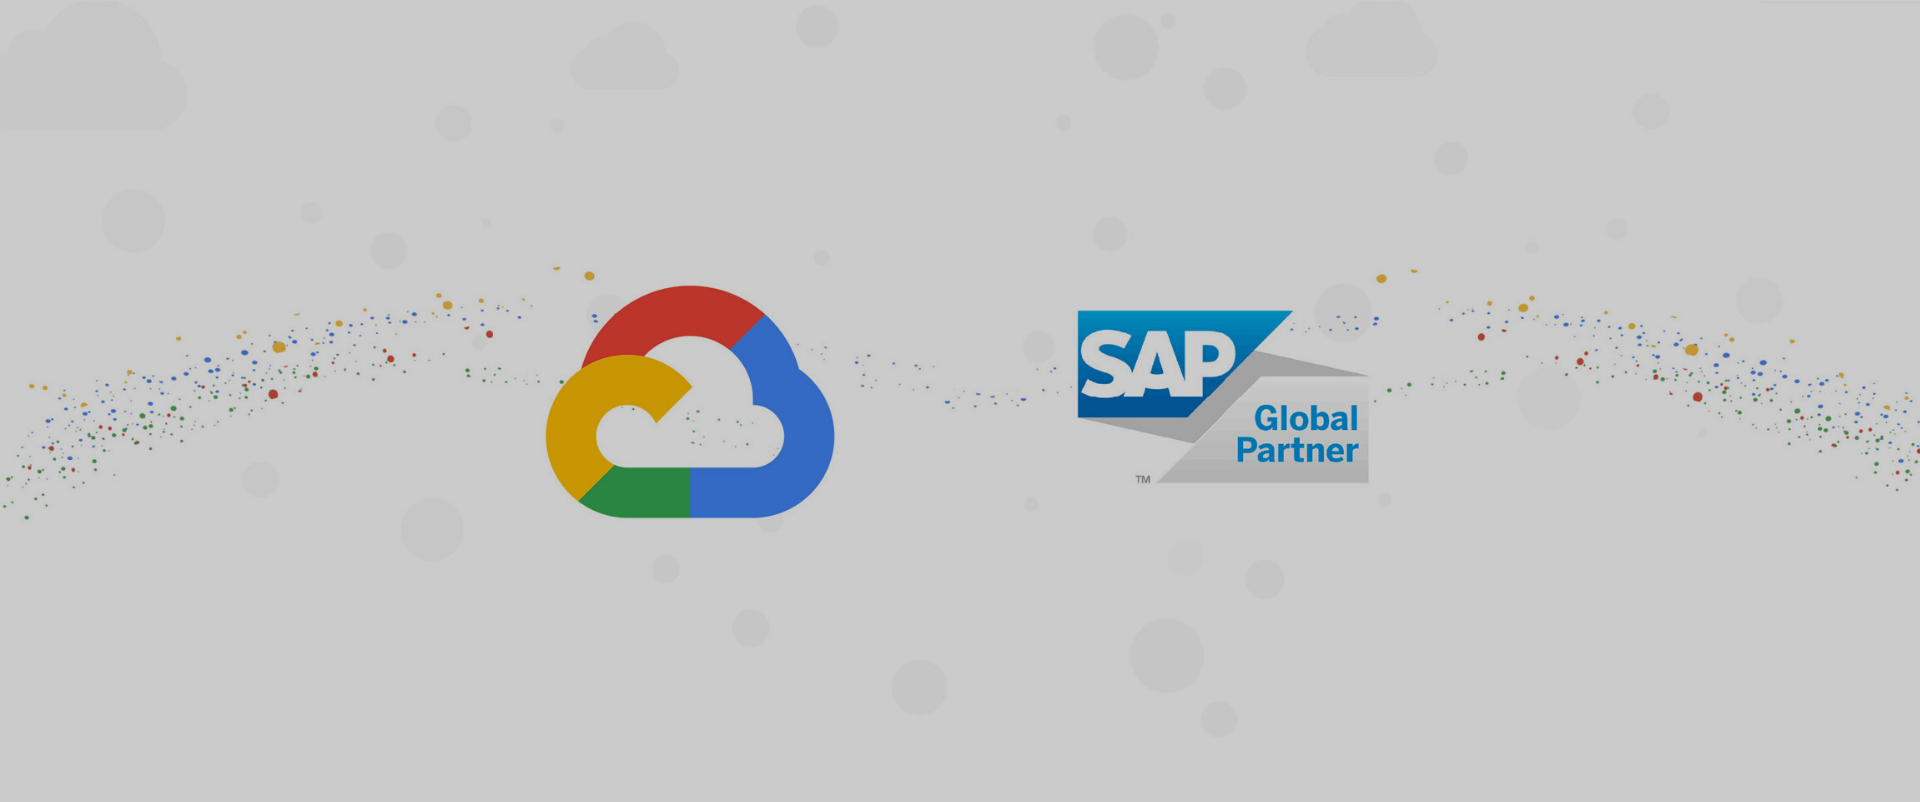 Future-proofing your business with Google Cloud and SAP